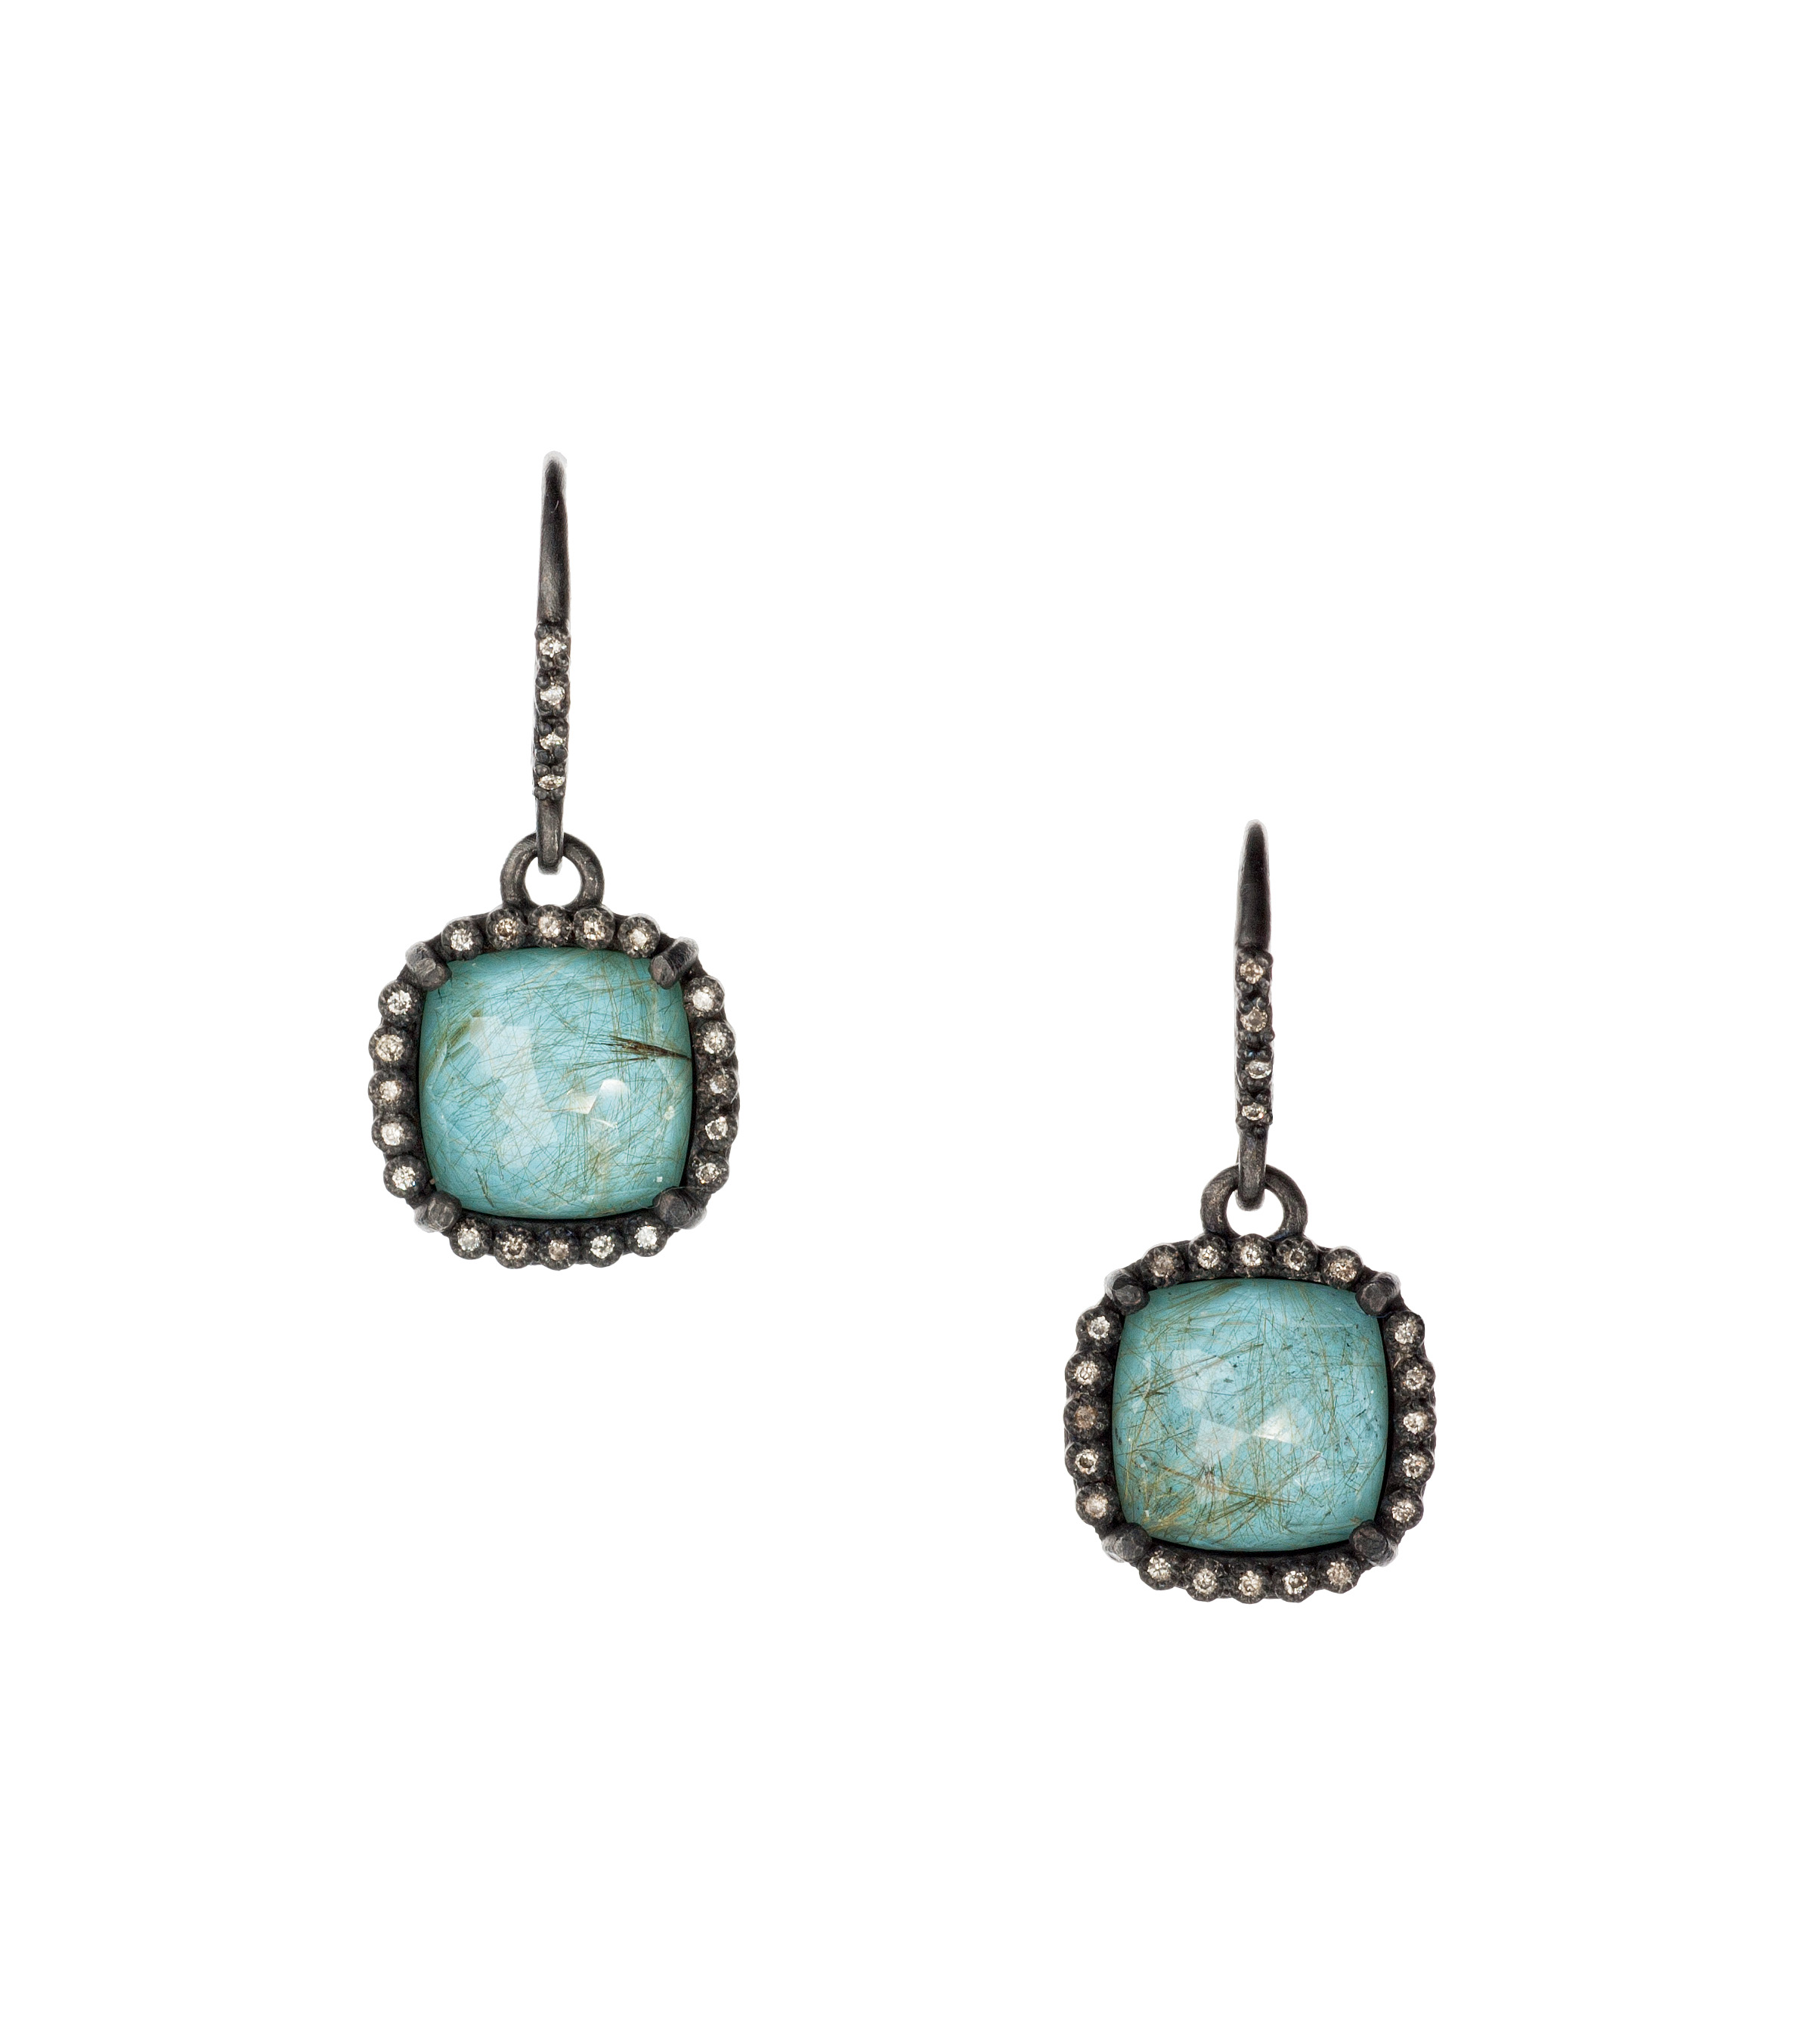 Turquoise and ruilated quartz earrings